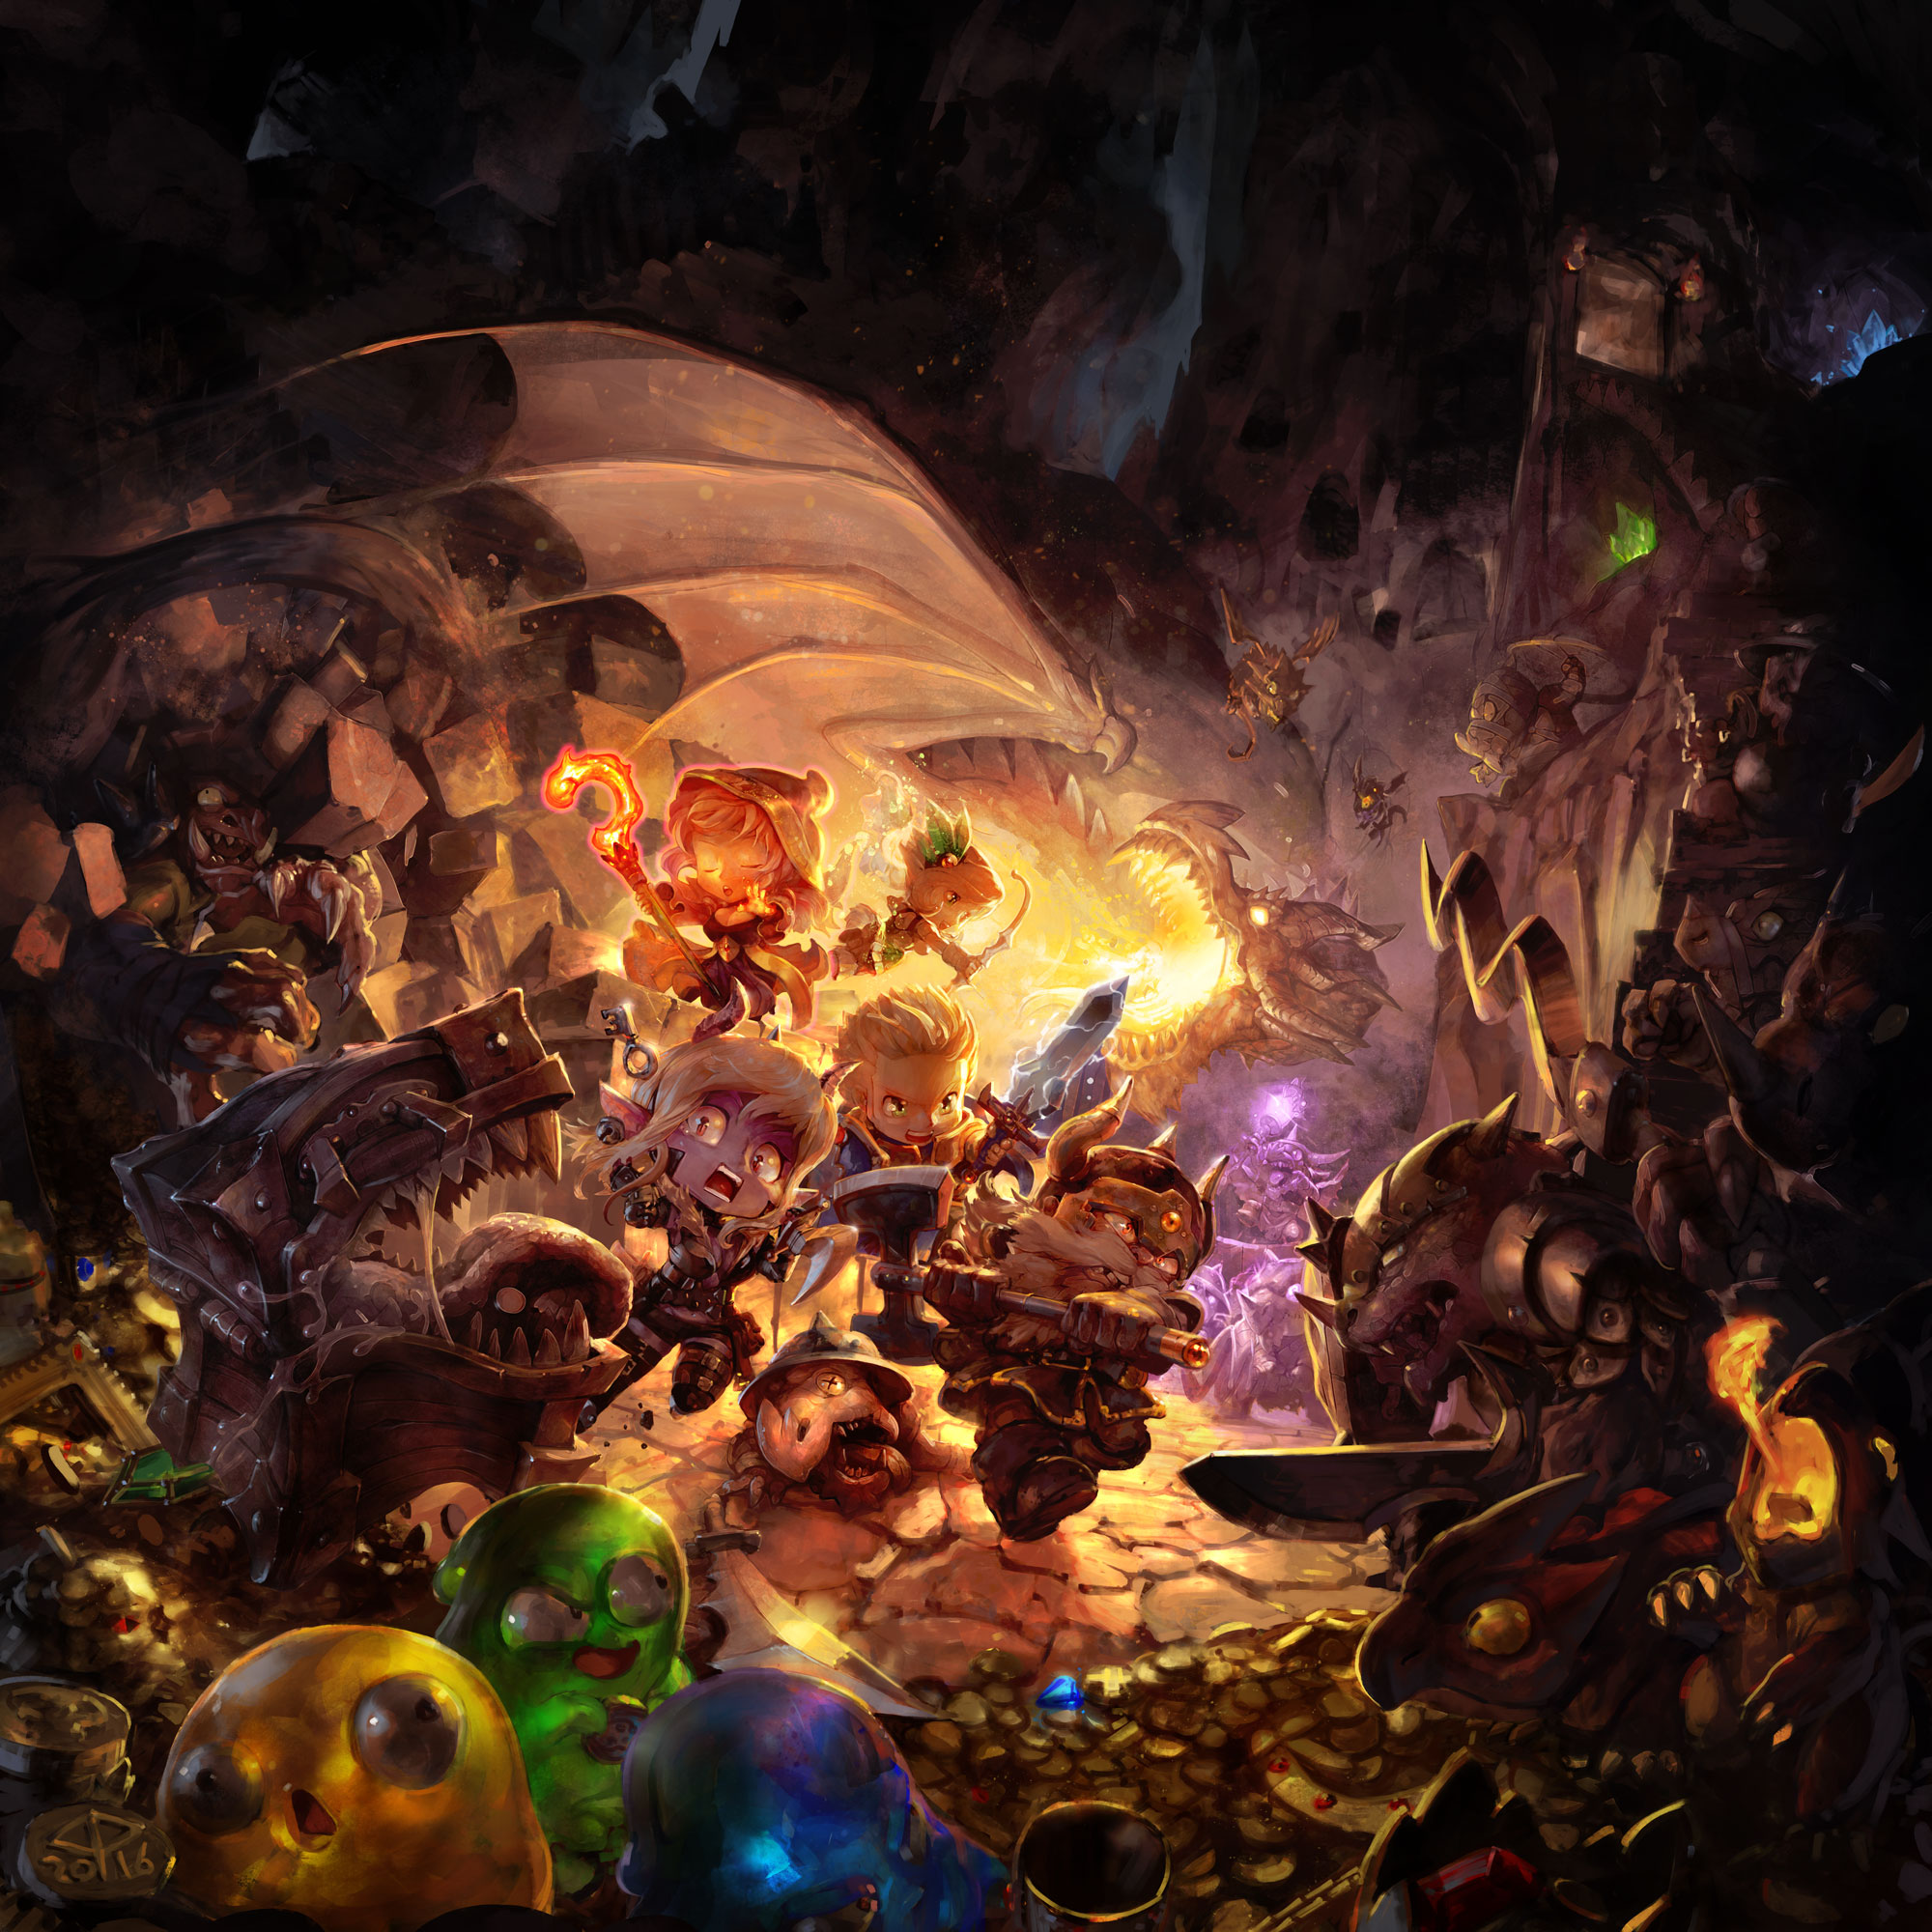 Super Dungeon Tactics Videogame Key Art